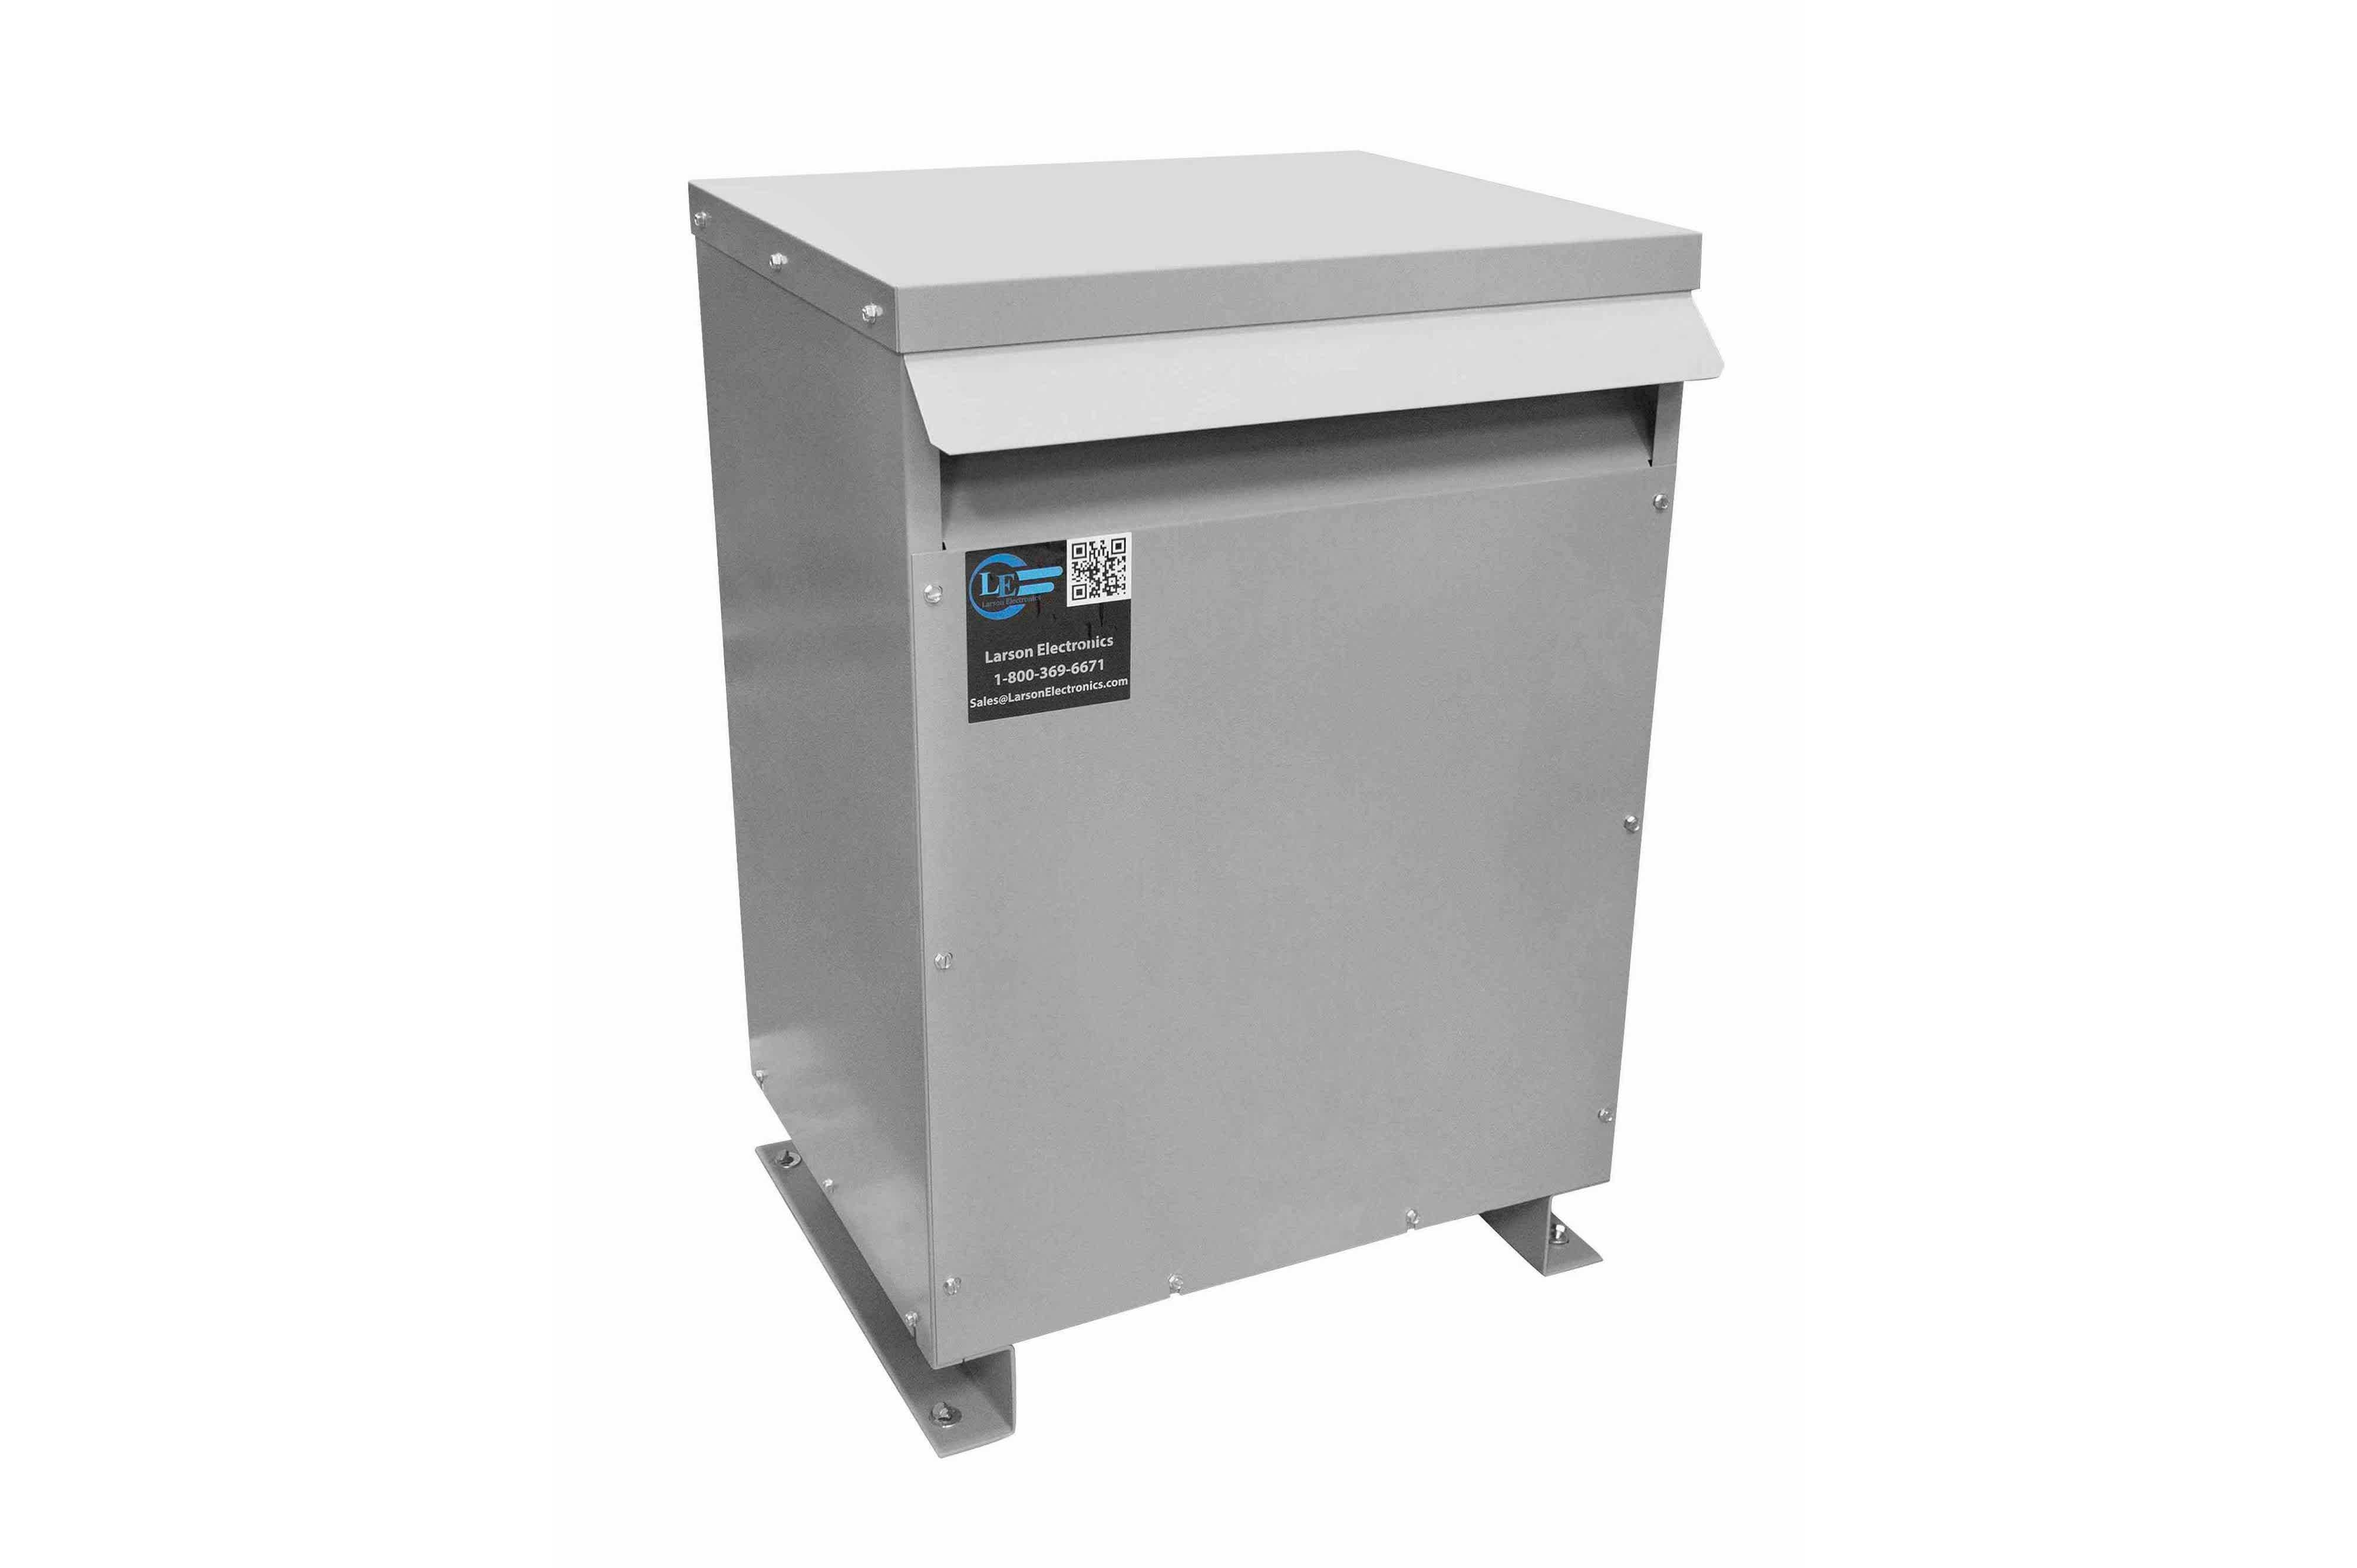 26 kVA 3PH Isolation Transformer, 440V Wye Primary, 208V Delta Secondary, N3R, Ventilated, 60 Hz